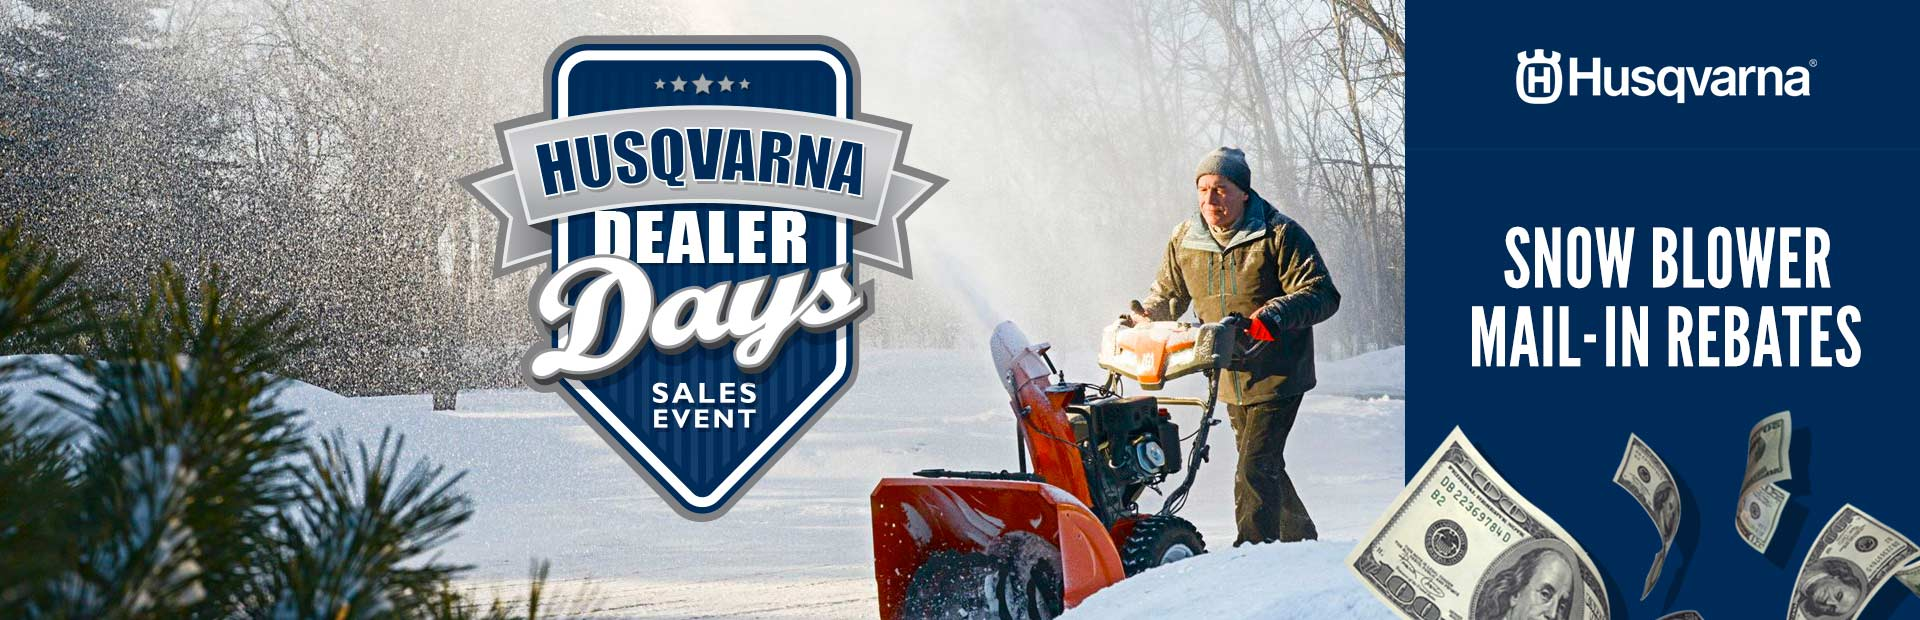 Husqvarna: Snow Blower Mail-In Rebates